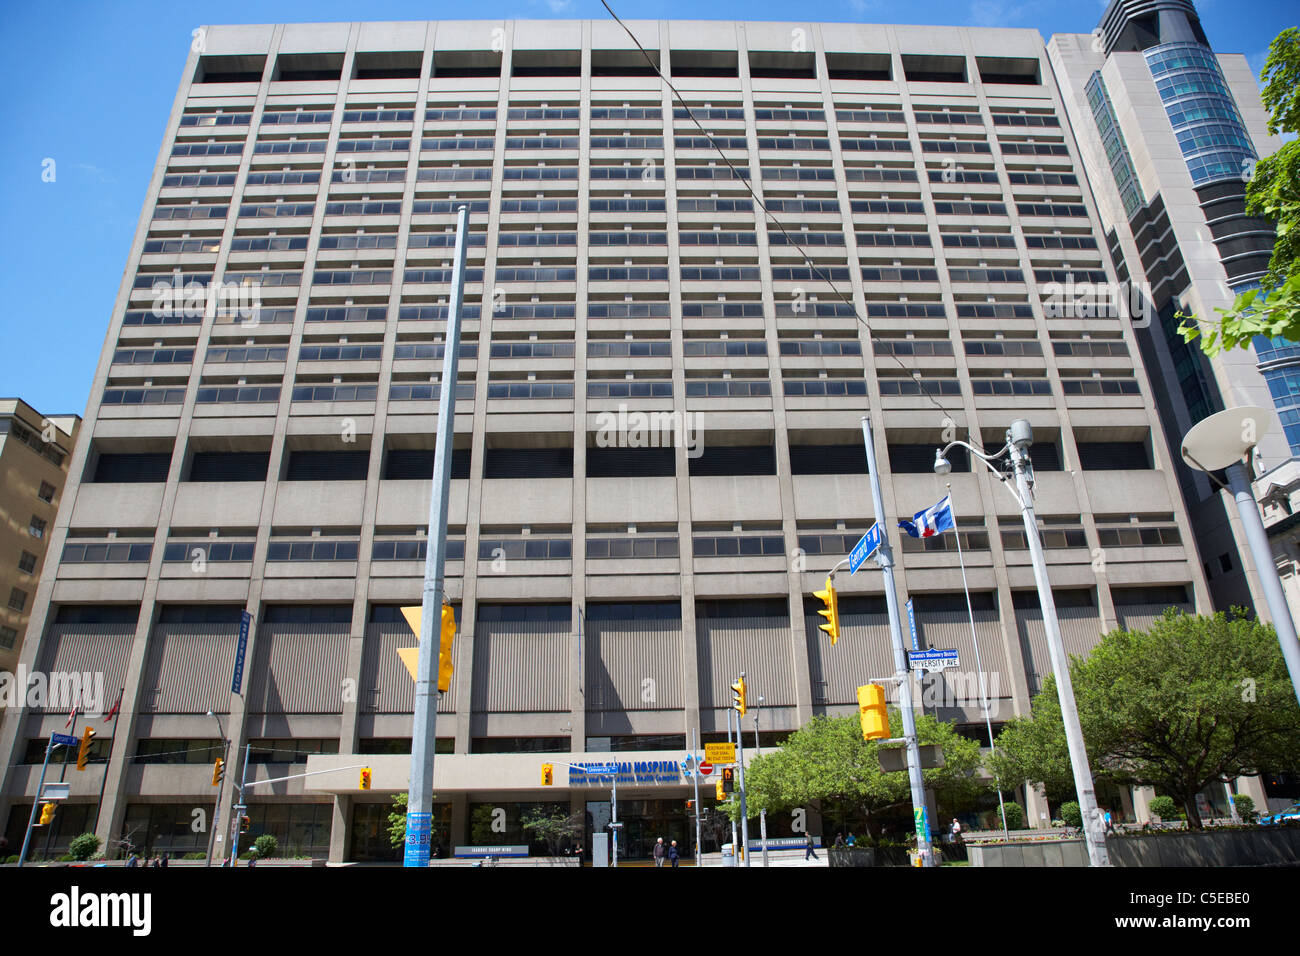 mount sinai hospital joseph and wolf lebovic health complex toronto ontario canada - Stock Image